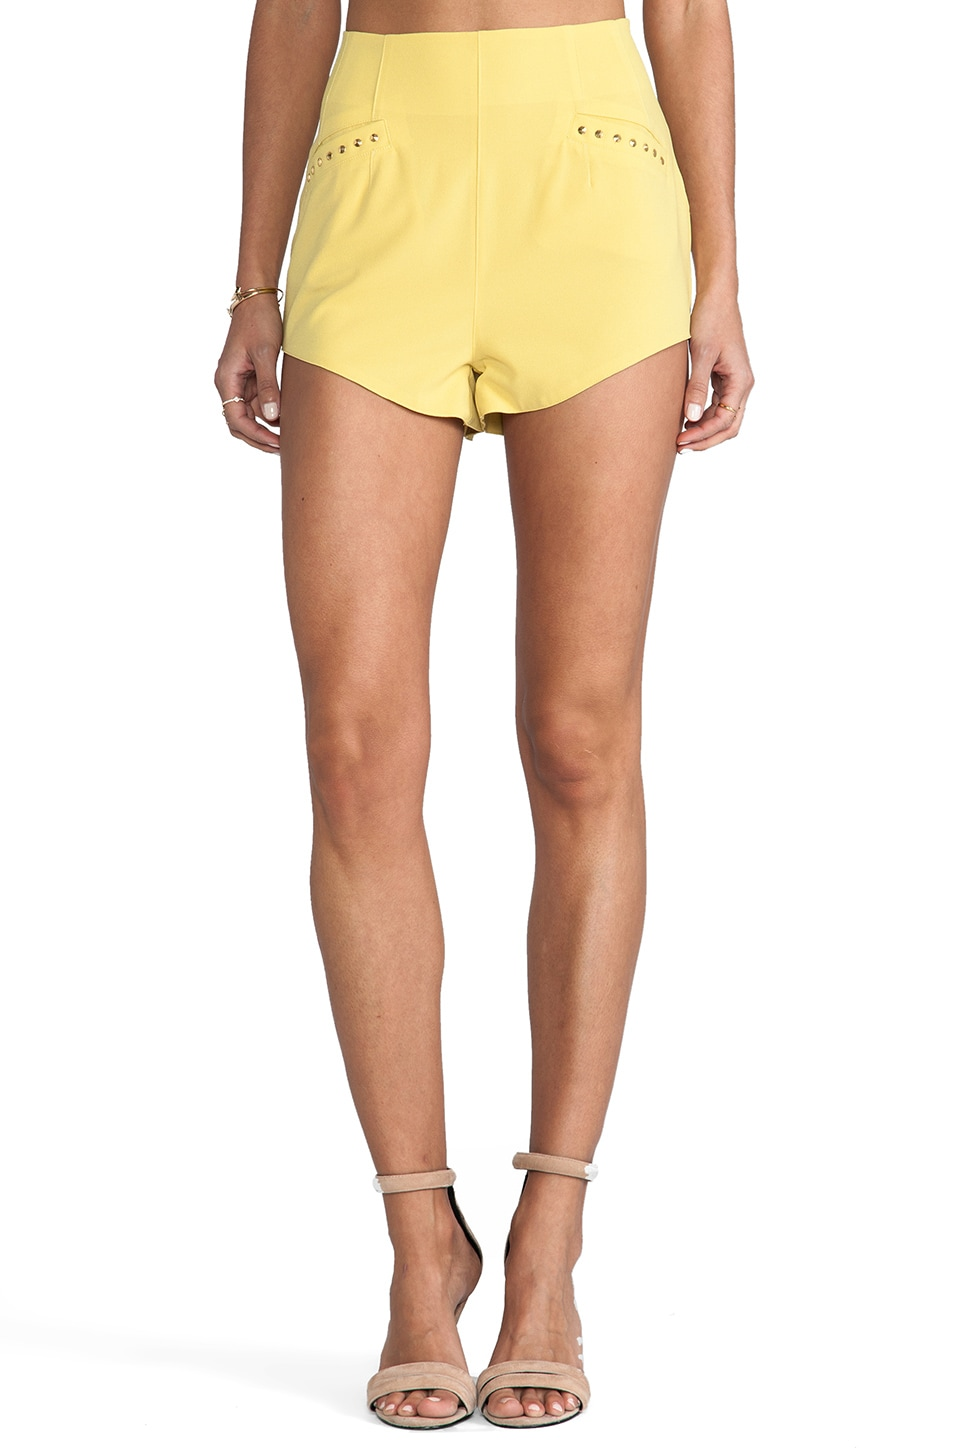 Lovers + Friends Fashionista Shorts in Citrus